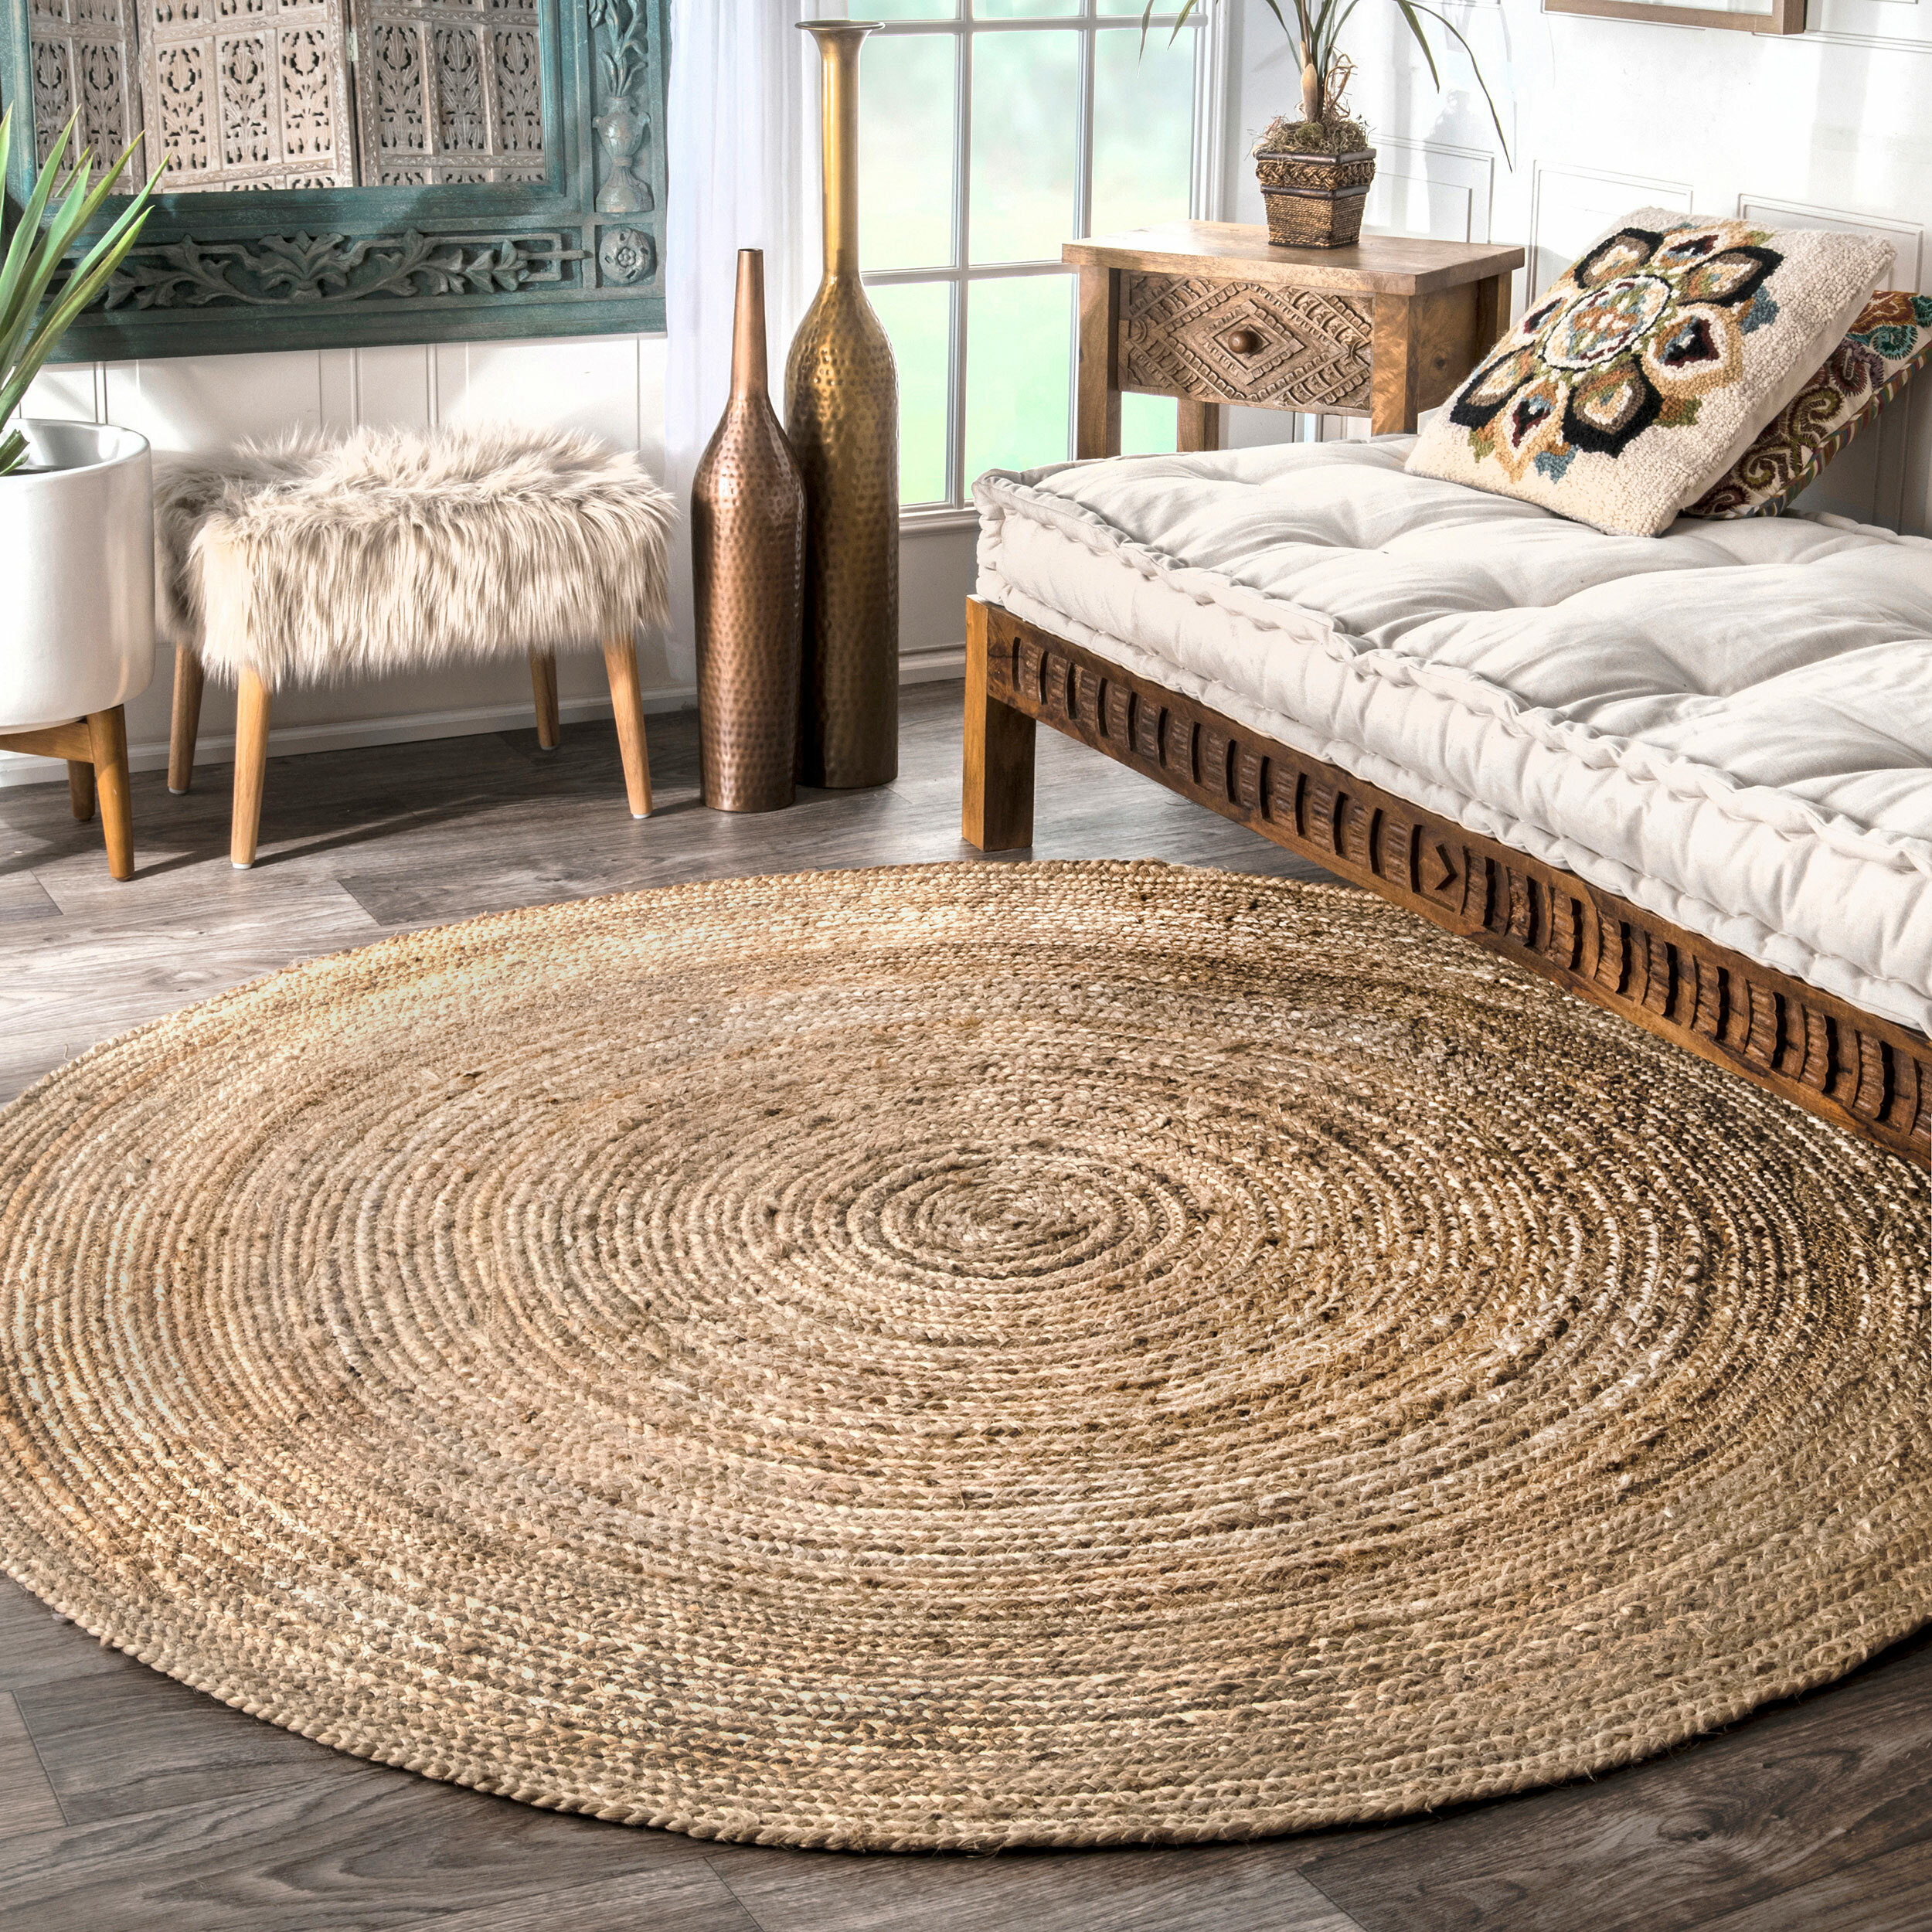 3 4 Round Area Rugs You Ll Love In 2020 Wayfair